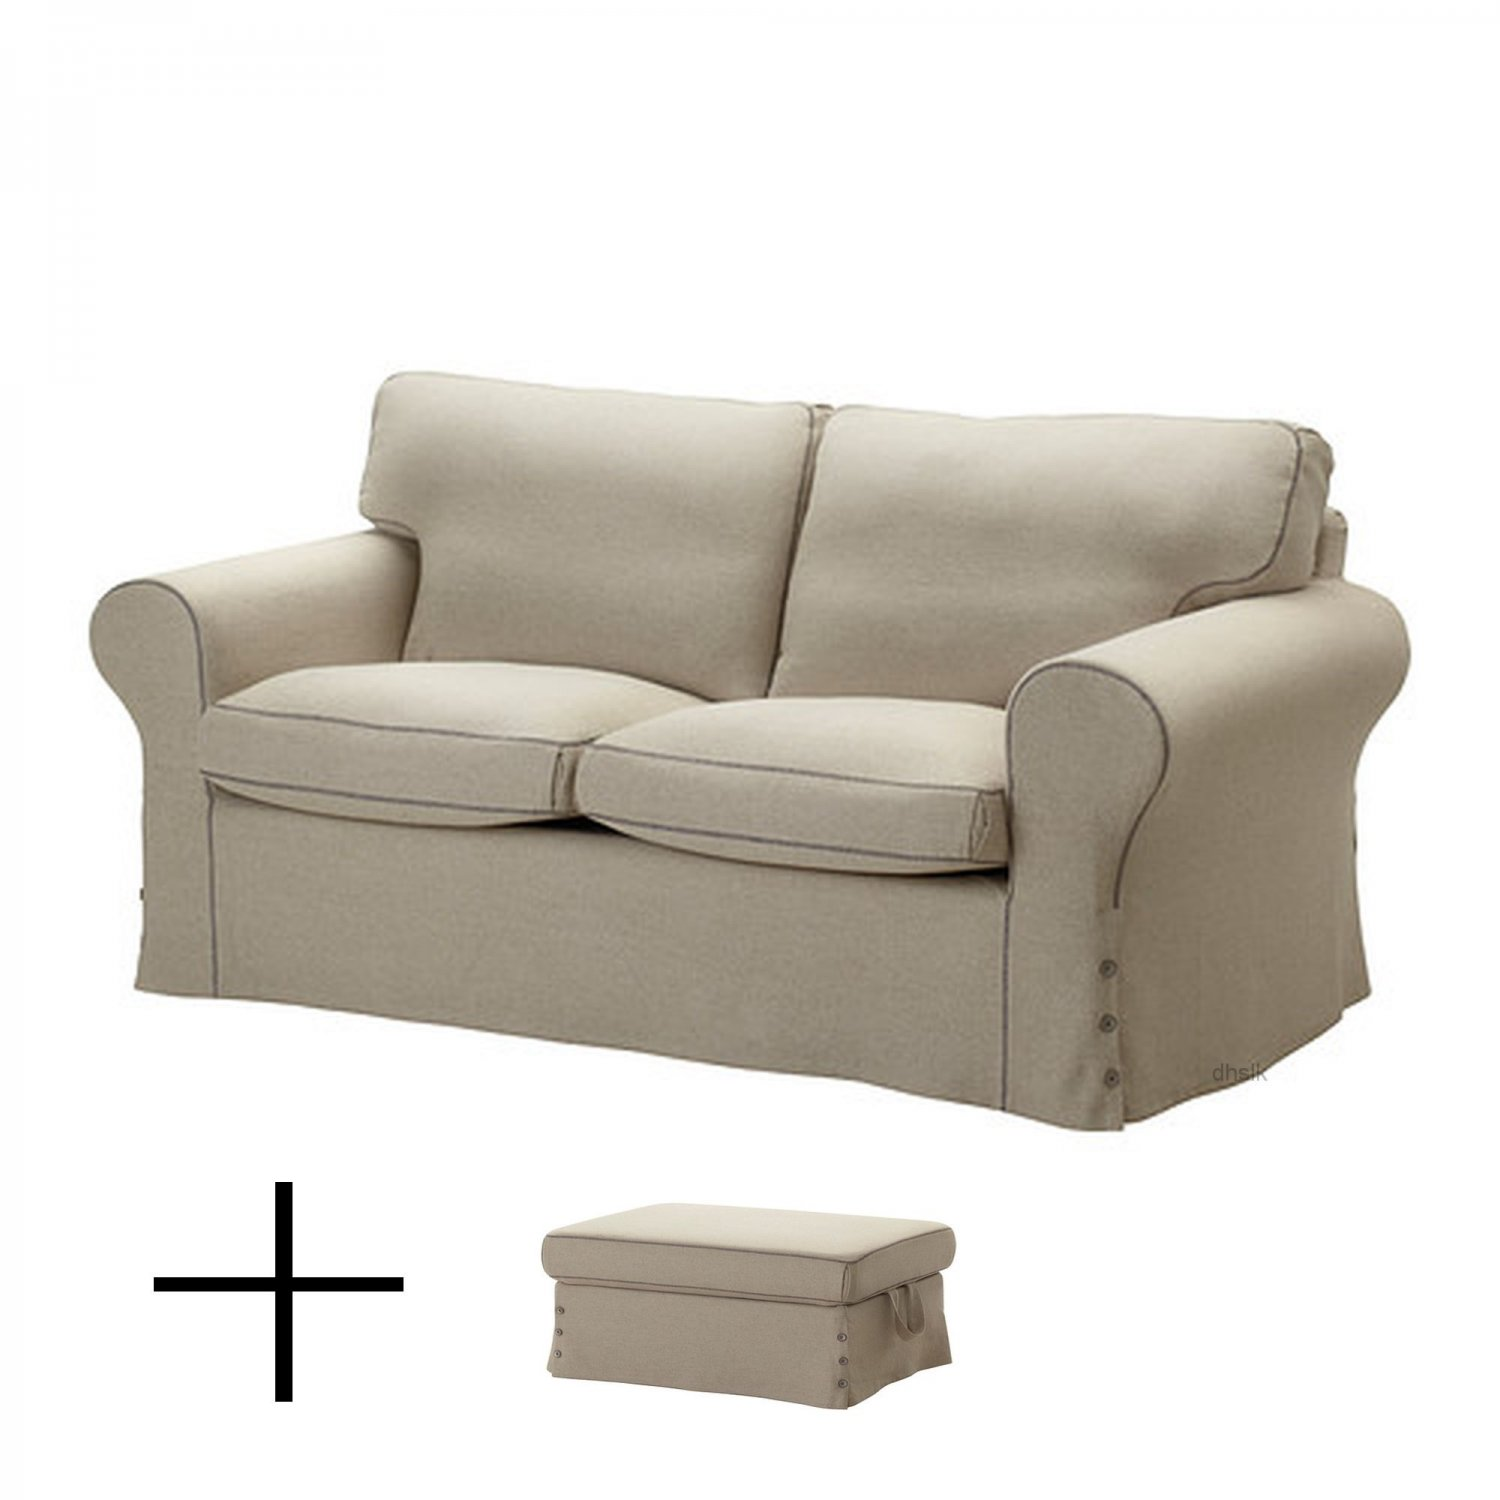 ikea karlanda sofa covers uk rowe slipcover ektorp 2 seat and footstool slipcovers loveseat